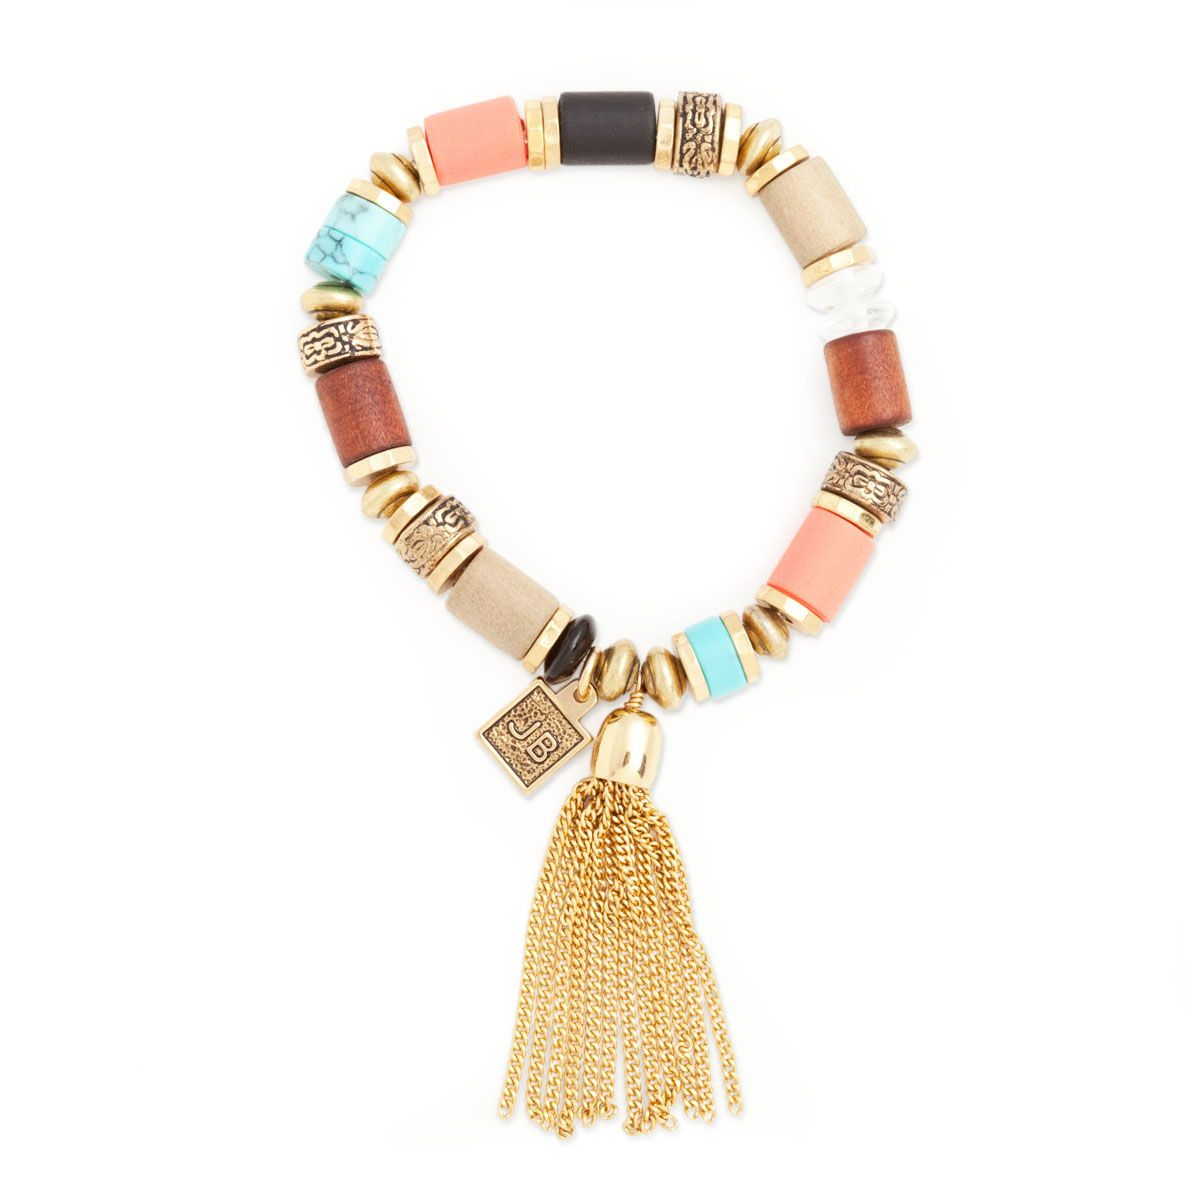 Stylish and imaginative describes this fabulous stretch bracelet from Jenny Bird featuring colored stones and beads, gold-tone discs and her signature gold-tone tassel. - Goldtone metal, stones,beads